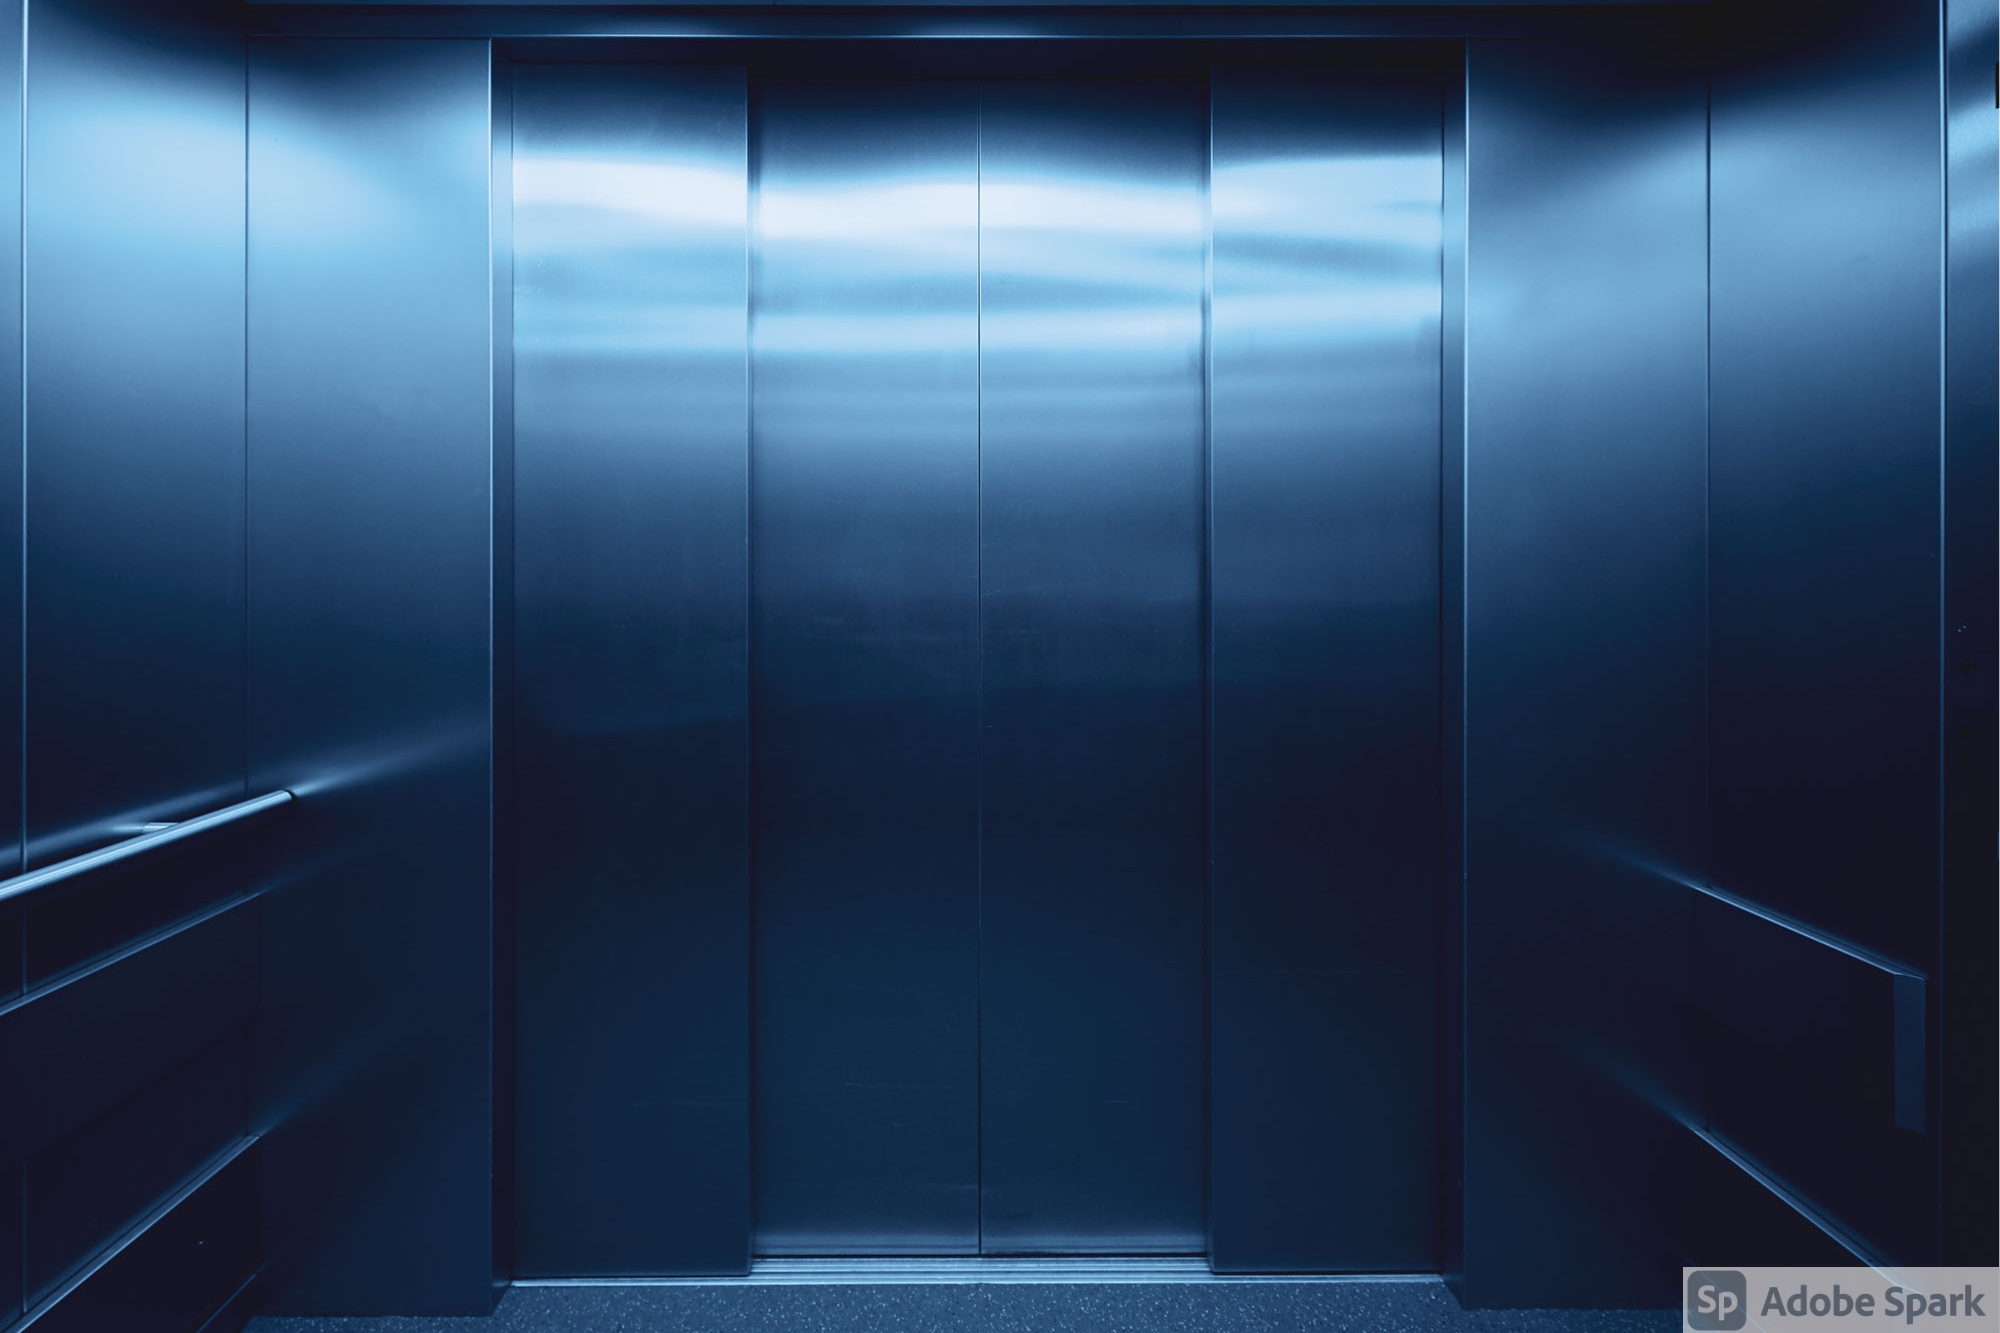 Elevators in commercial and residential buildings require a high level of fire protection to keep occupants safe during a fire.